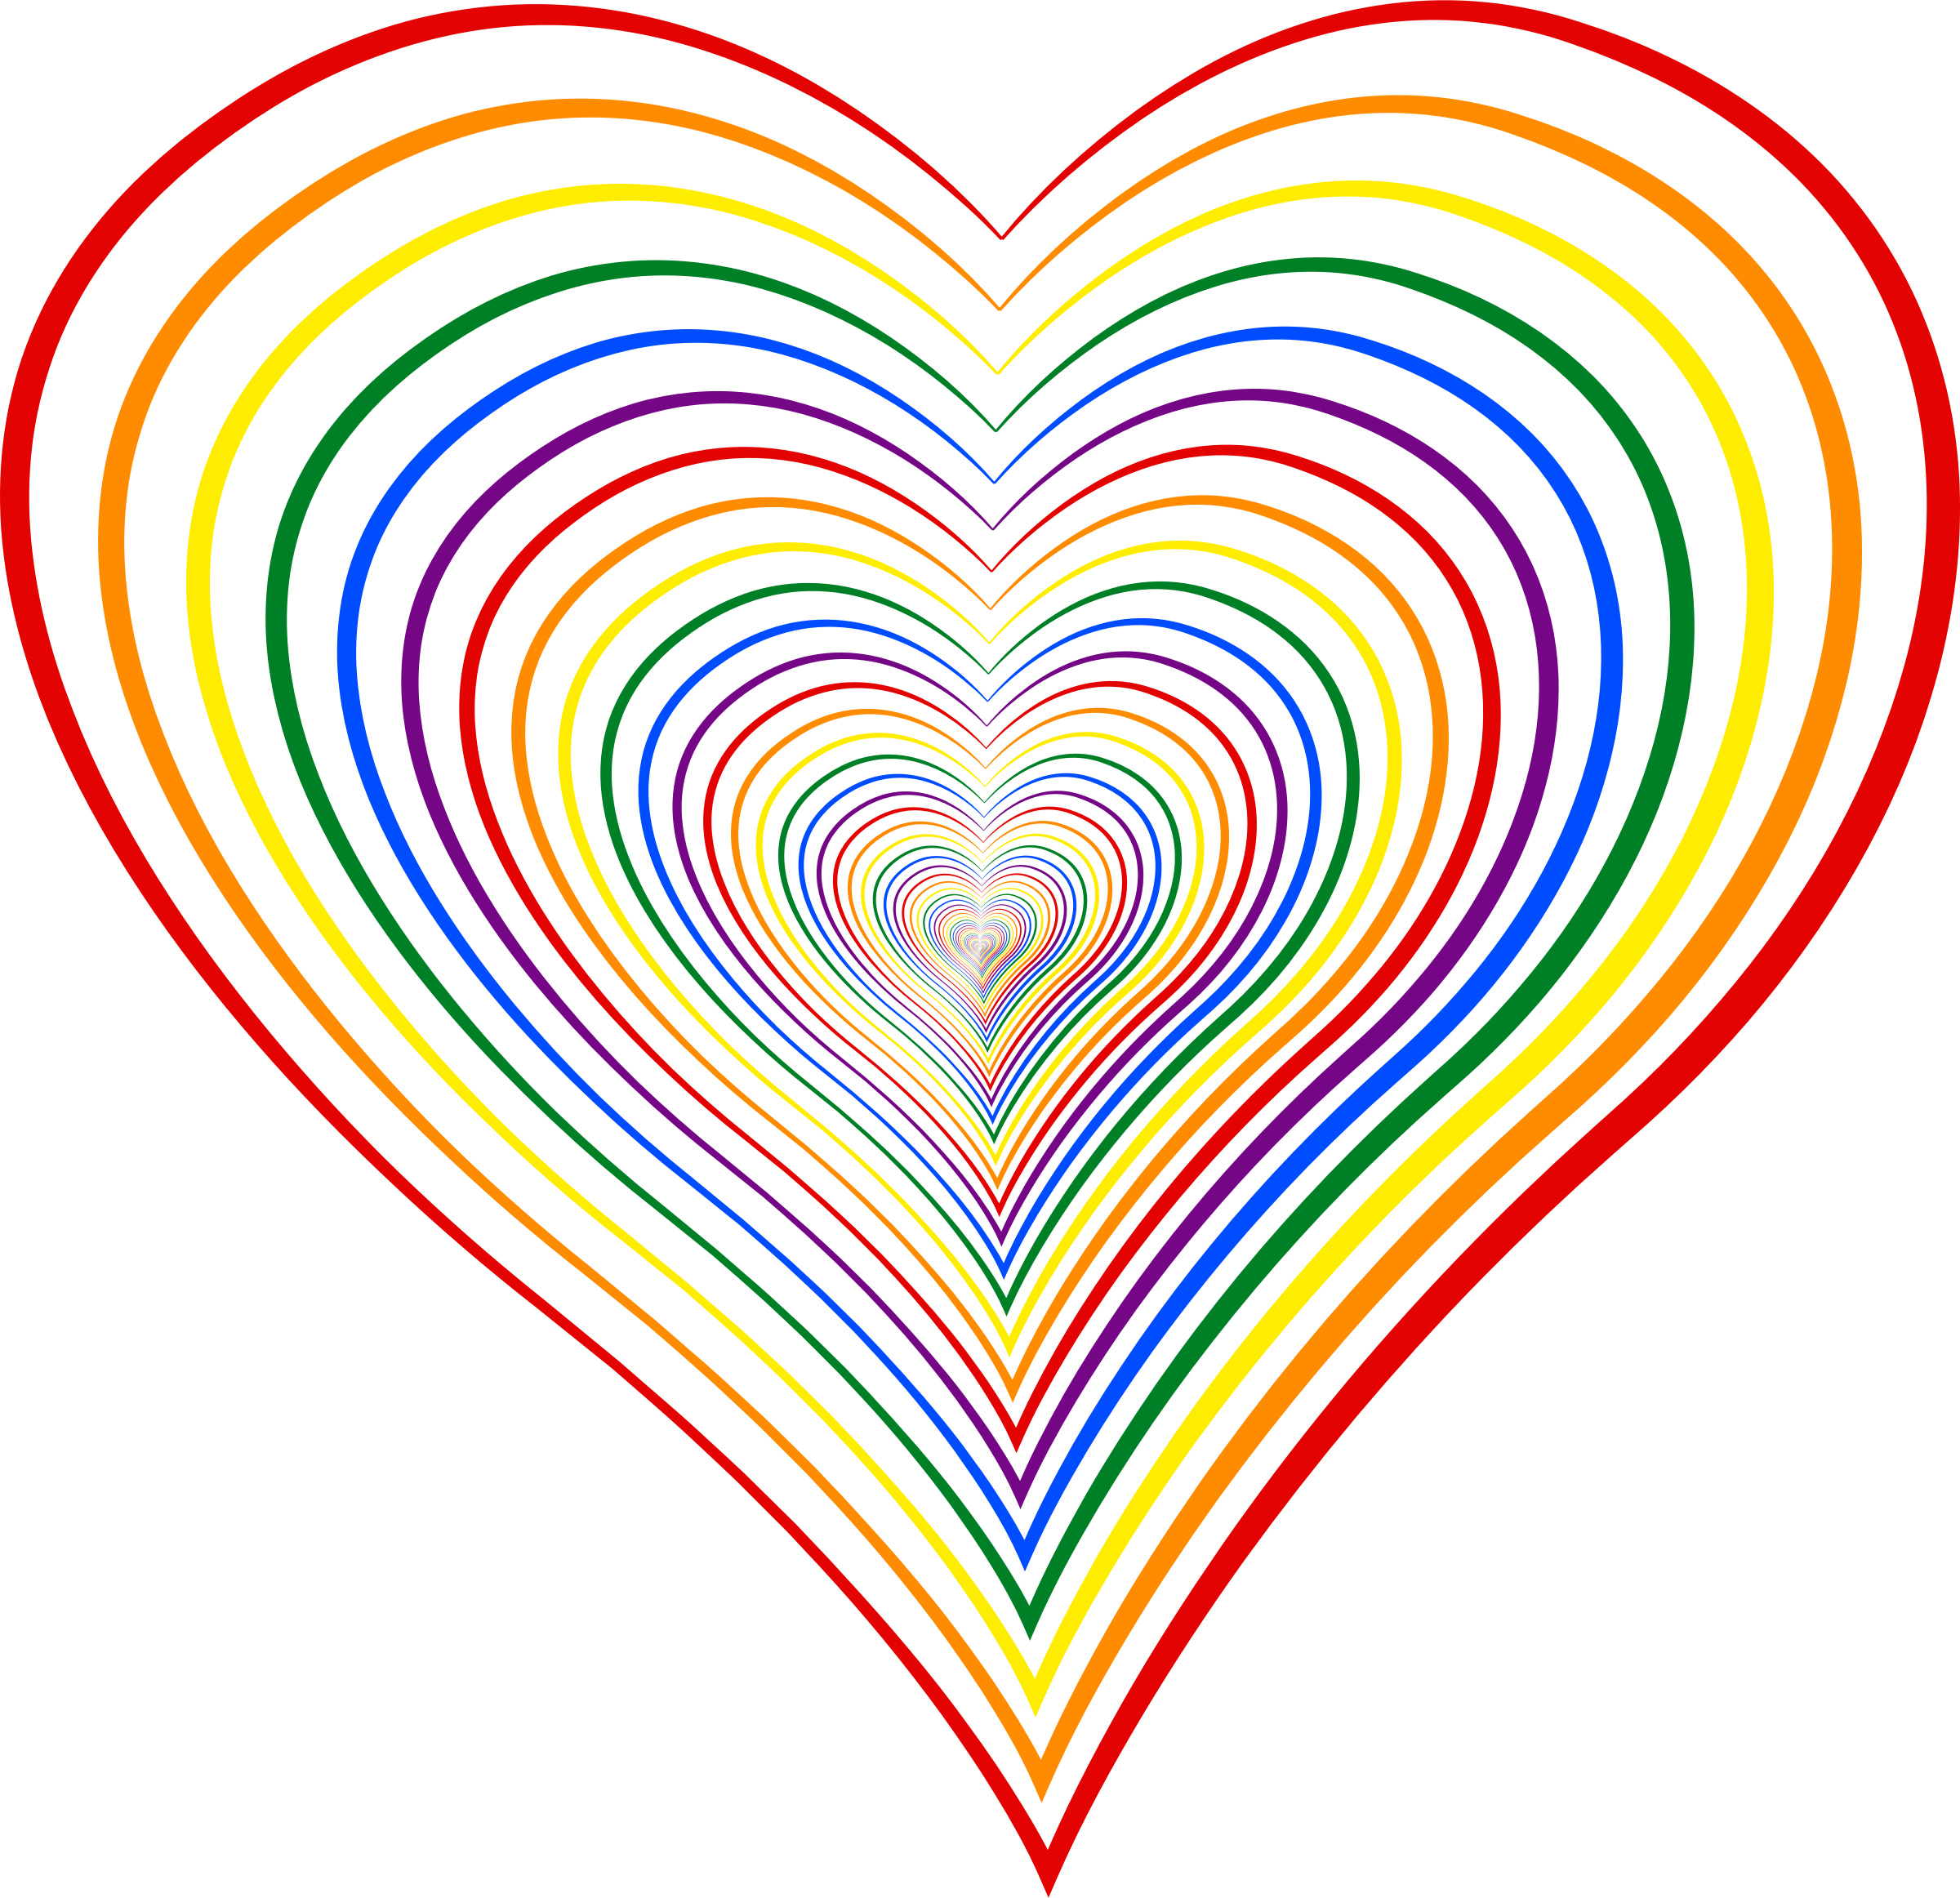 Lgbt heart clipart image royalty free library Clipart - Heart 8 (colour 2) image royalty free library